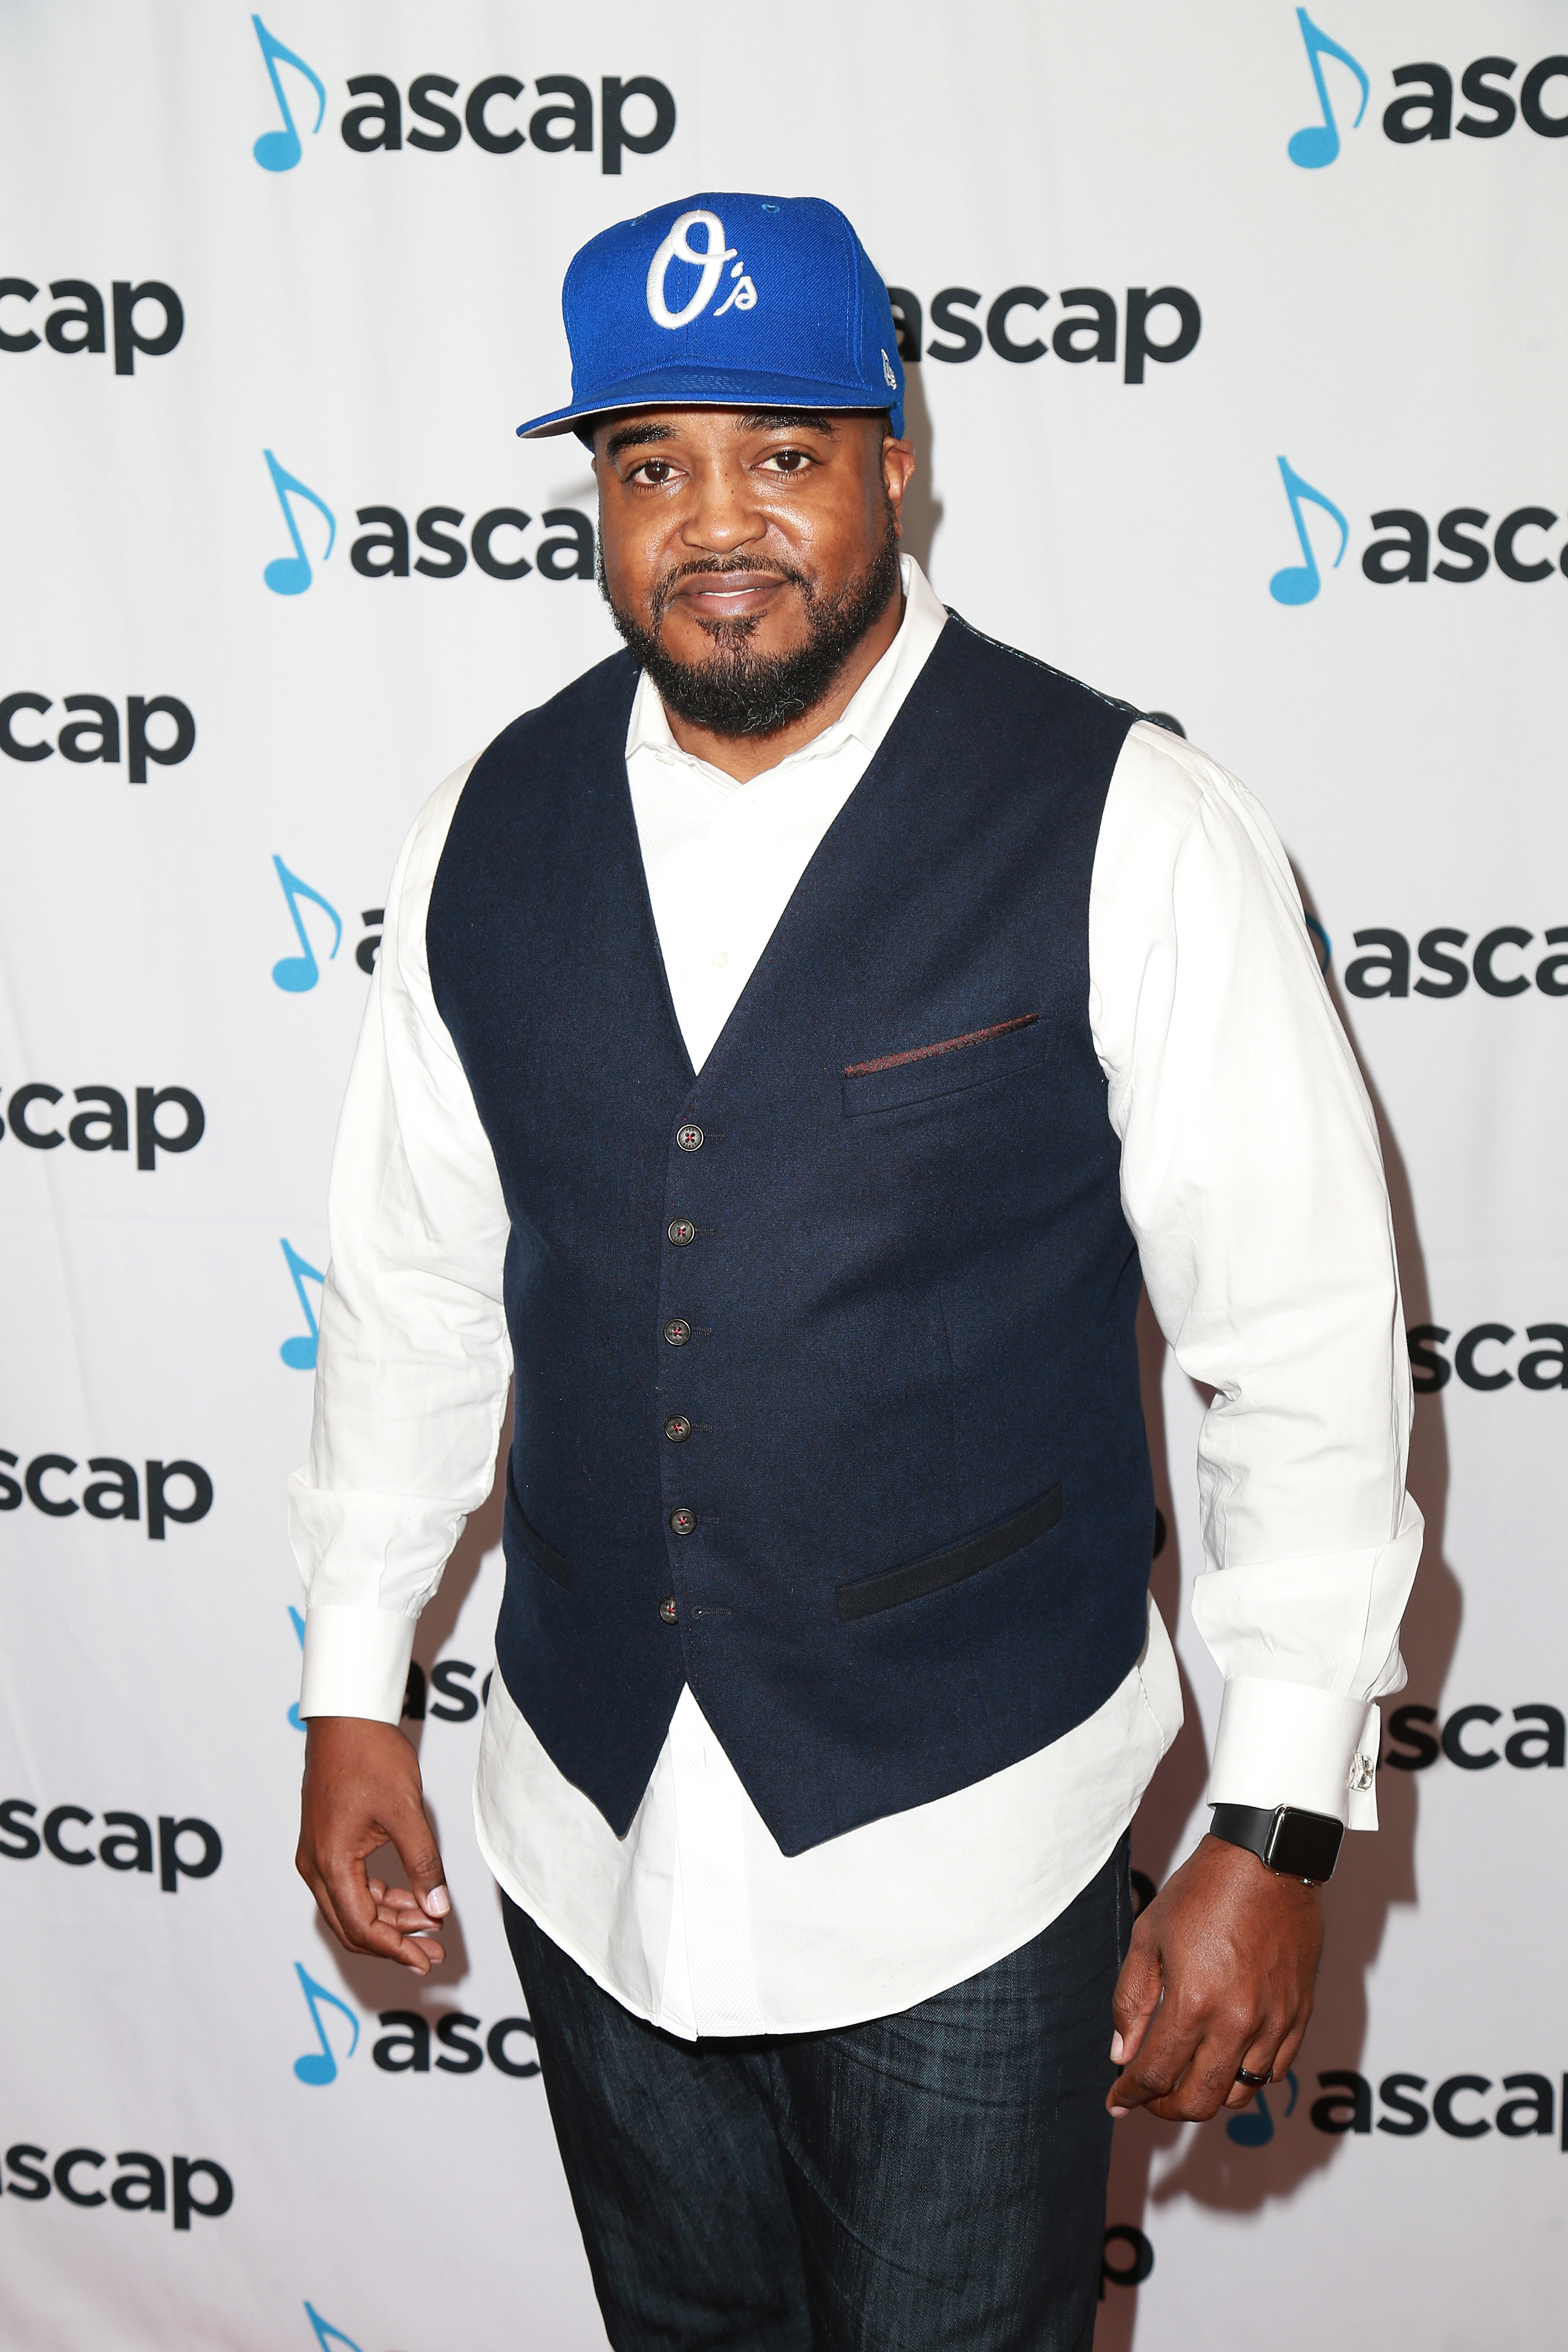 ASCAP And Motown Gospel's Morning Glory Breakfast Reception